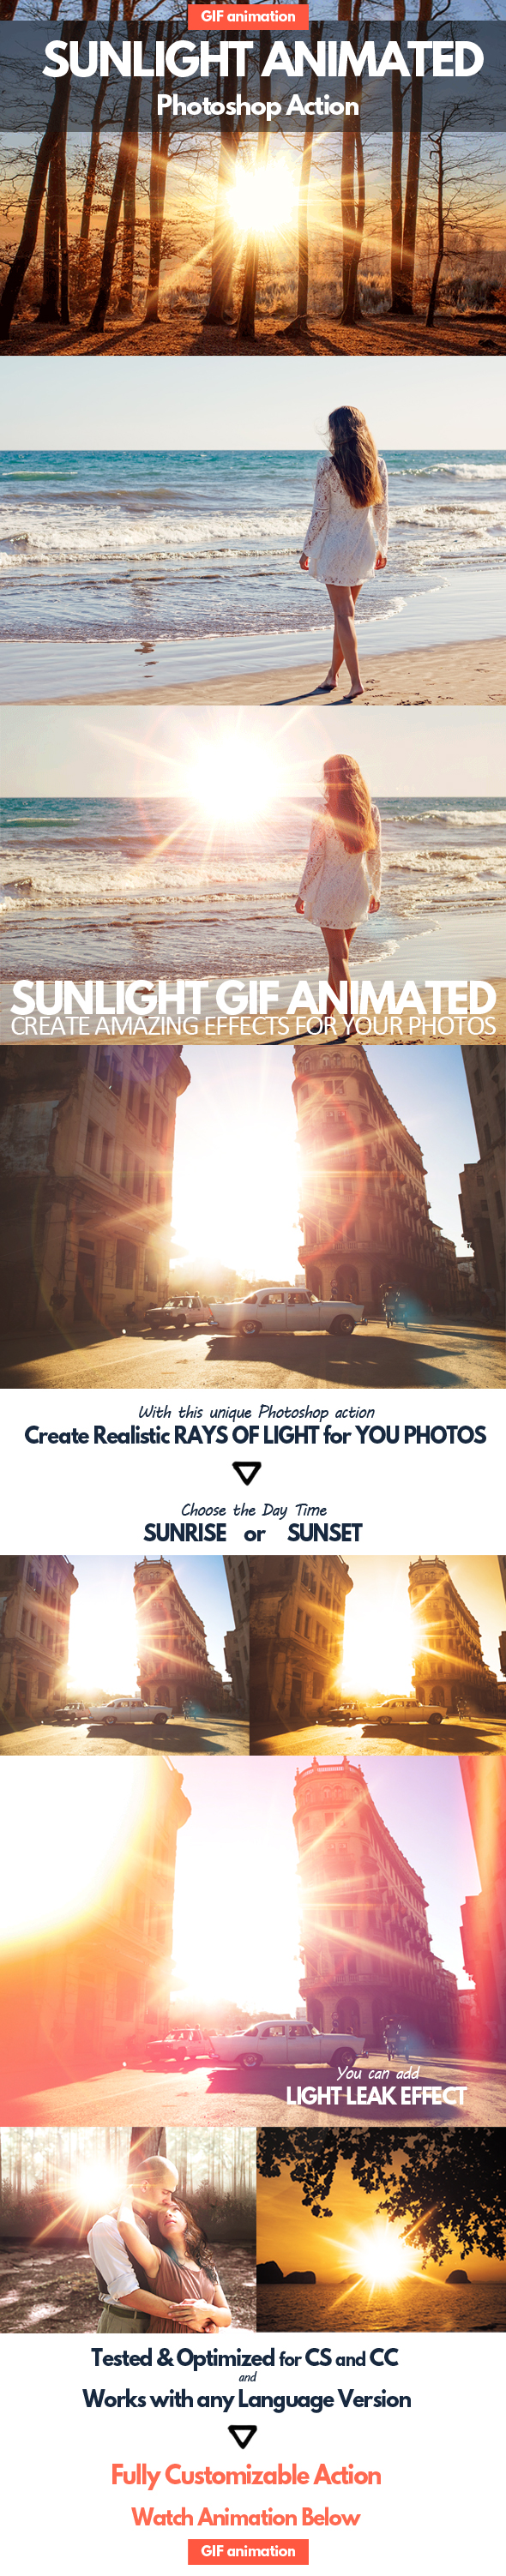 GraphicRiver Sunlight Animated GIF Photoshop Action 20329868